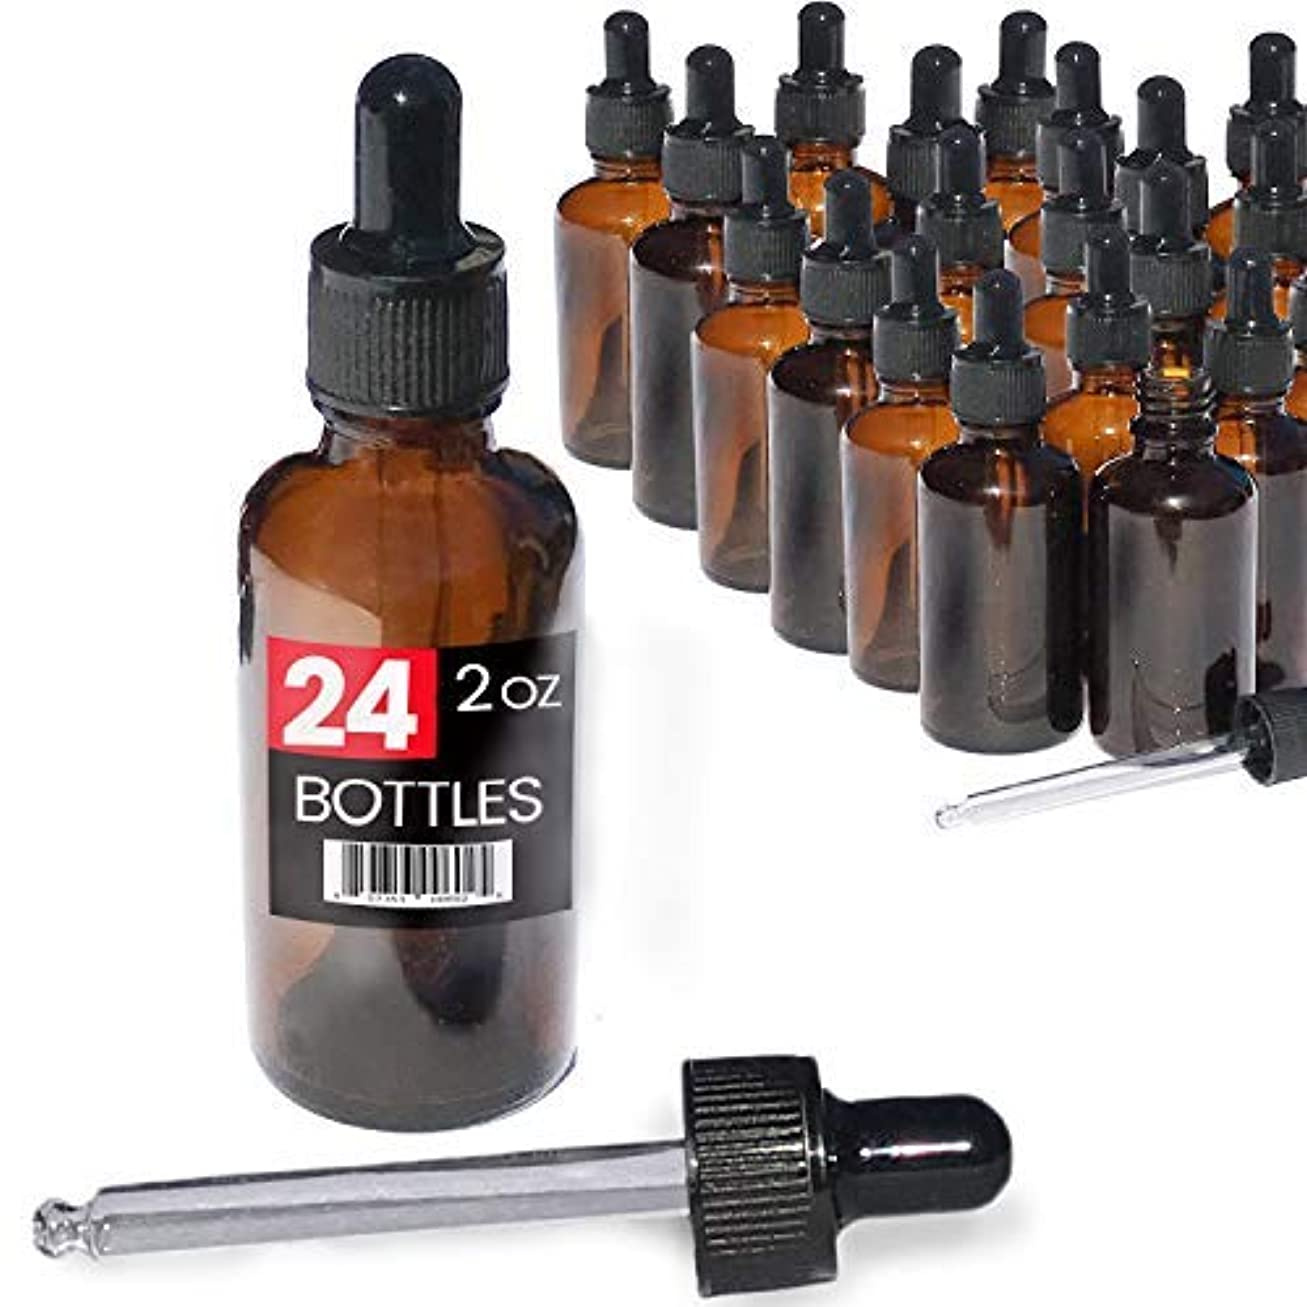 爆風良性ループ2oz Premium Dropper Bottles (24 pack) - Great for Essential Oils - Amber 2 oz Glass - Glass Eye Dropper - Guaranteed Non-Break Shipping [並行輸入品]